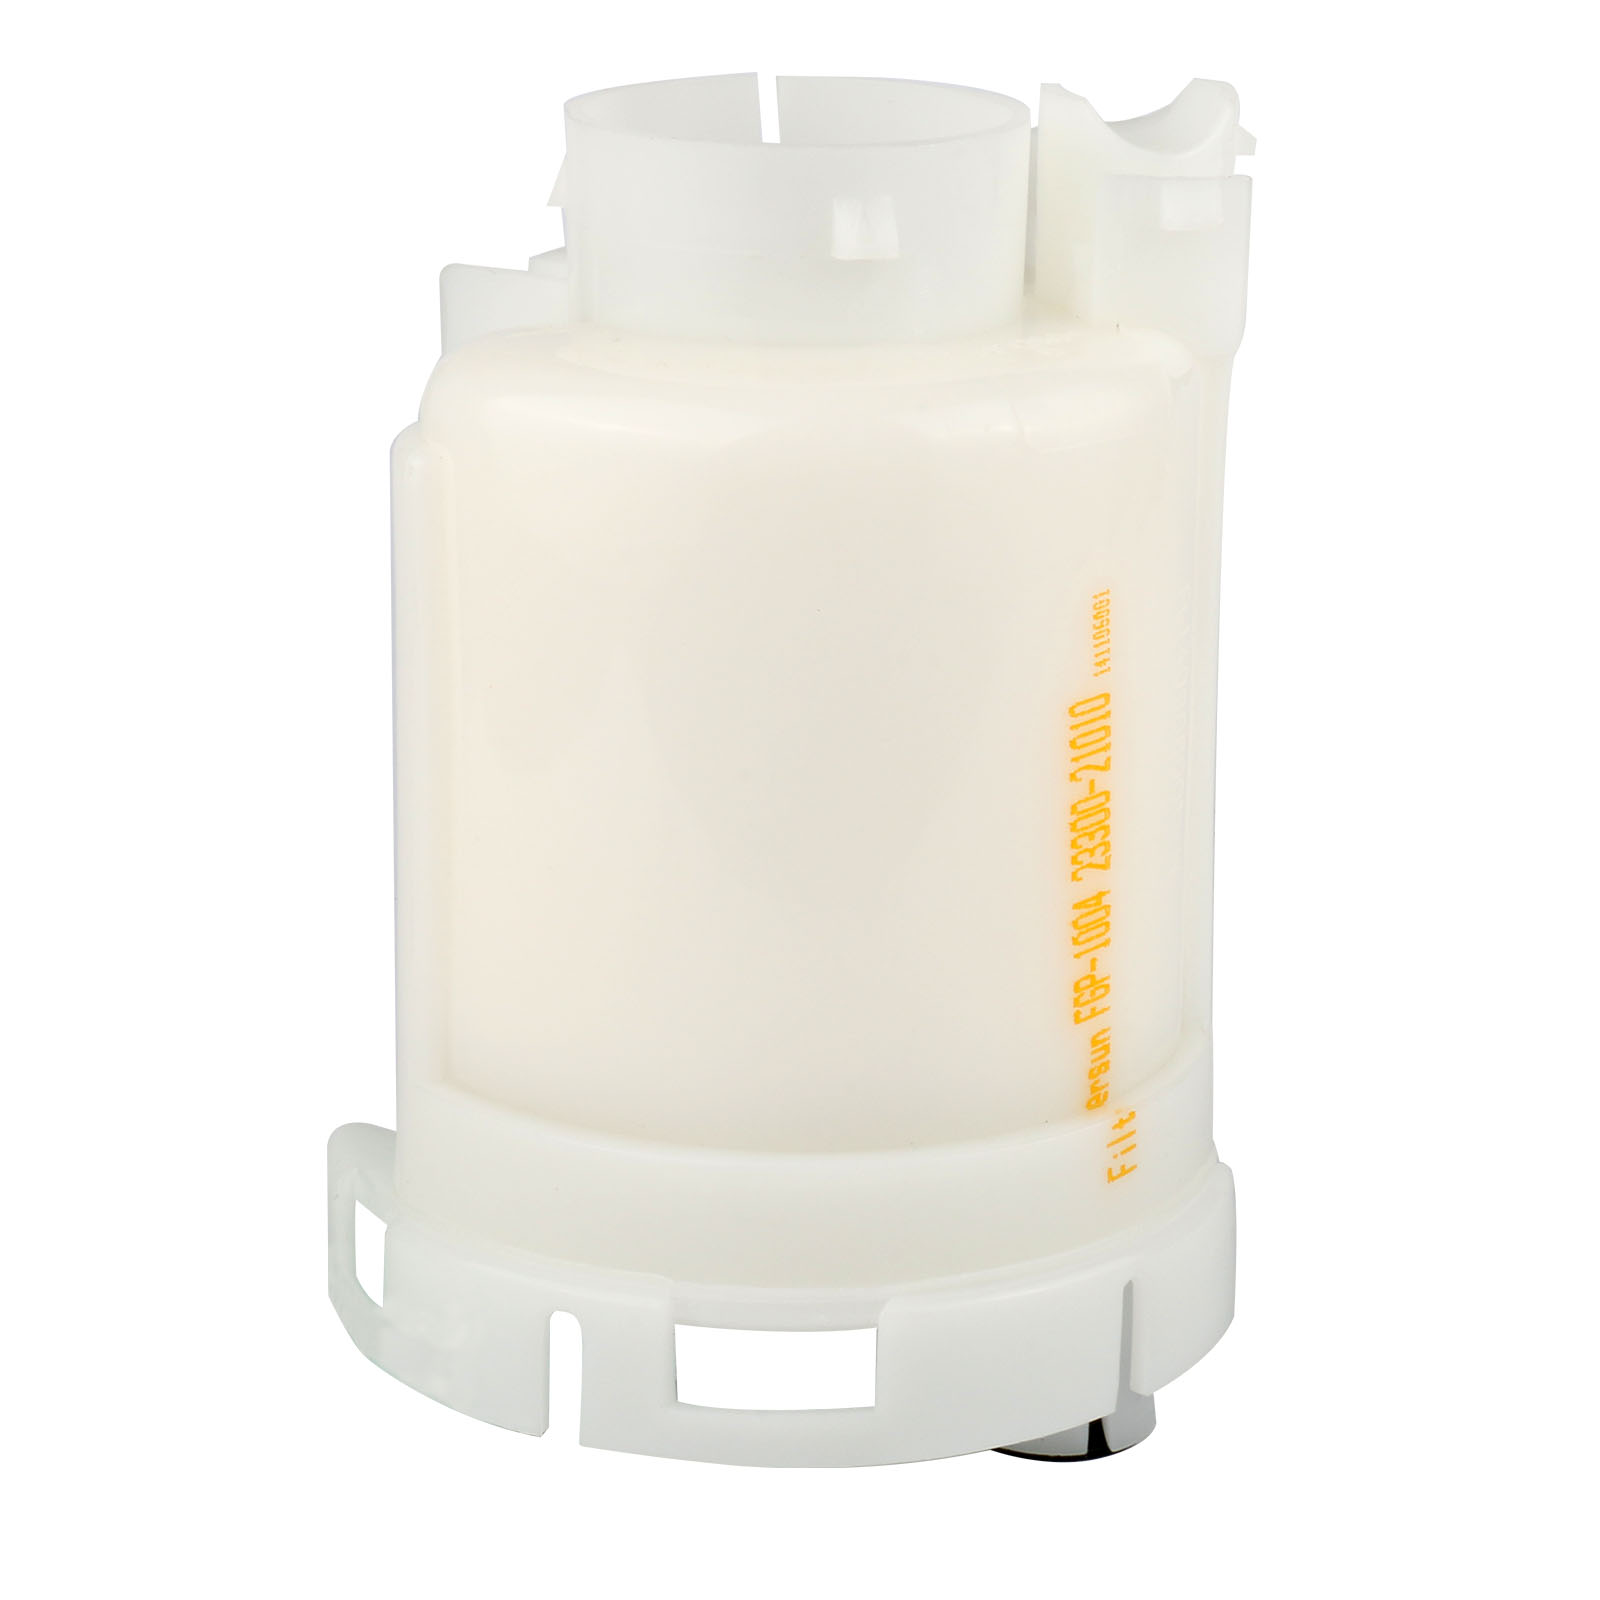 Car Fuel Filter Core Pump Network Gasoline 92 Toyota Camry Location Gas Petrol Oe 23300 21010 0d030replacement Parts For